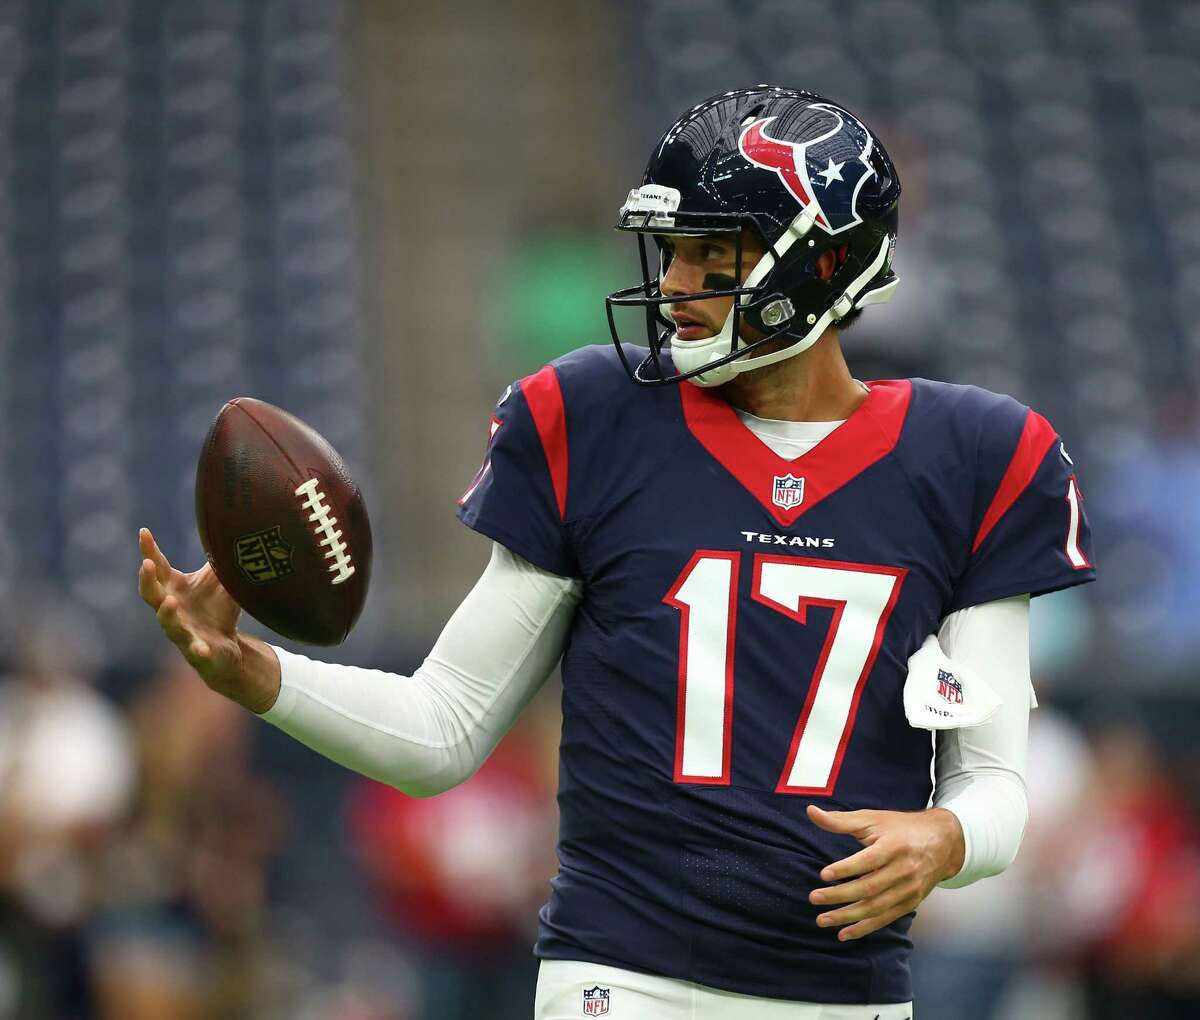 Following a shaky debut a week ago, the Texans' $72 million man demonstrated a lot more command and timing against the Saints. He completed 12 of 19 passes for 124 yards and one touchdown on a perfect fade pass to Will Fuller. He was intercepted on another fade intended for Fuller, rendering this a positive performance that was marred by the turnover. Overall, though, this was an encouraging game for Osweiler.